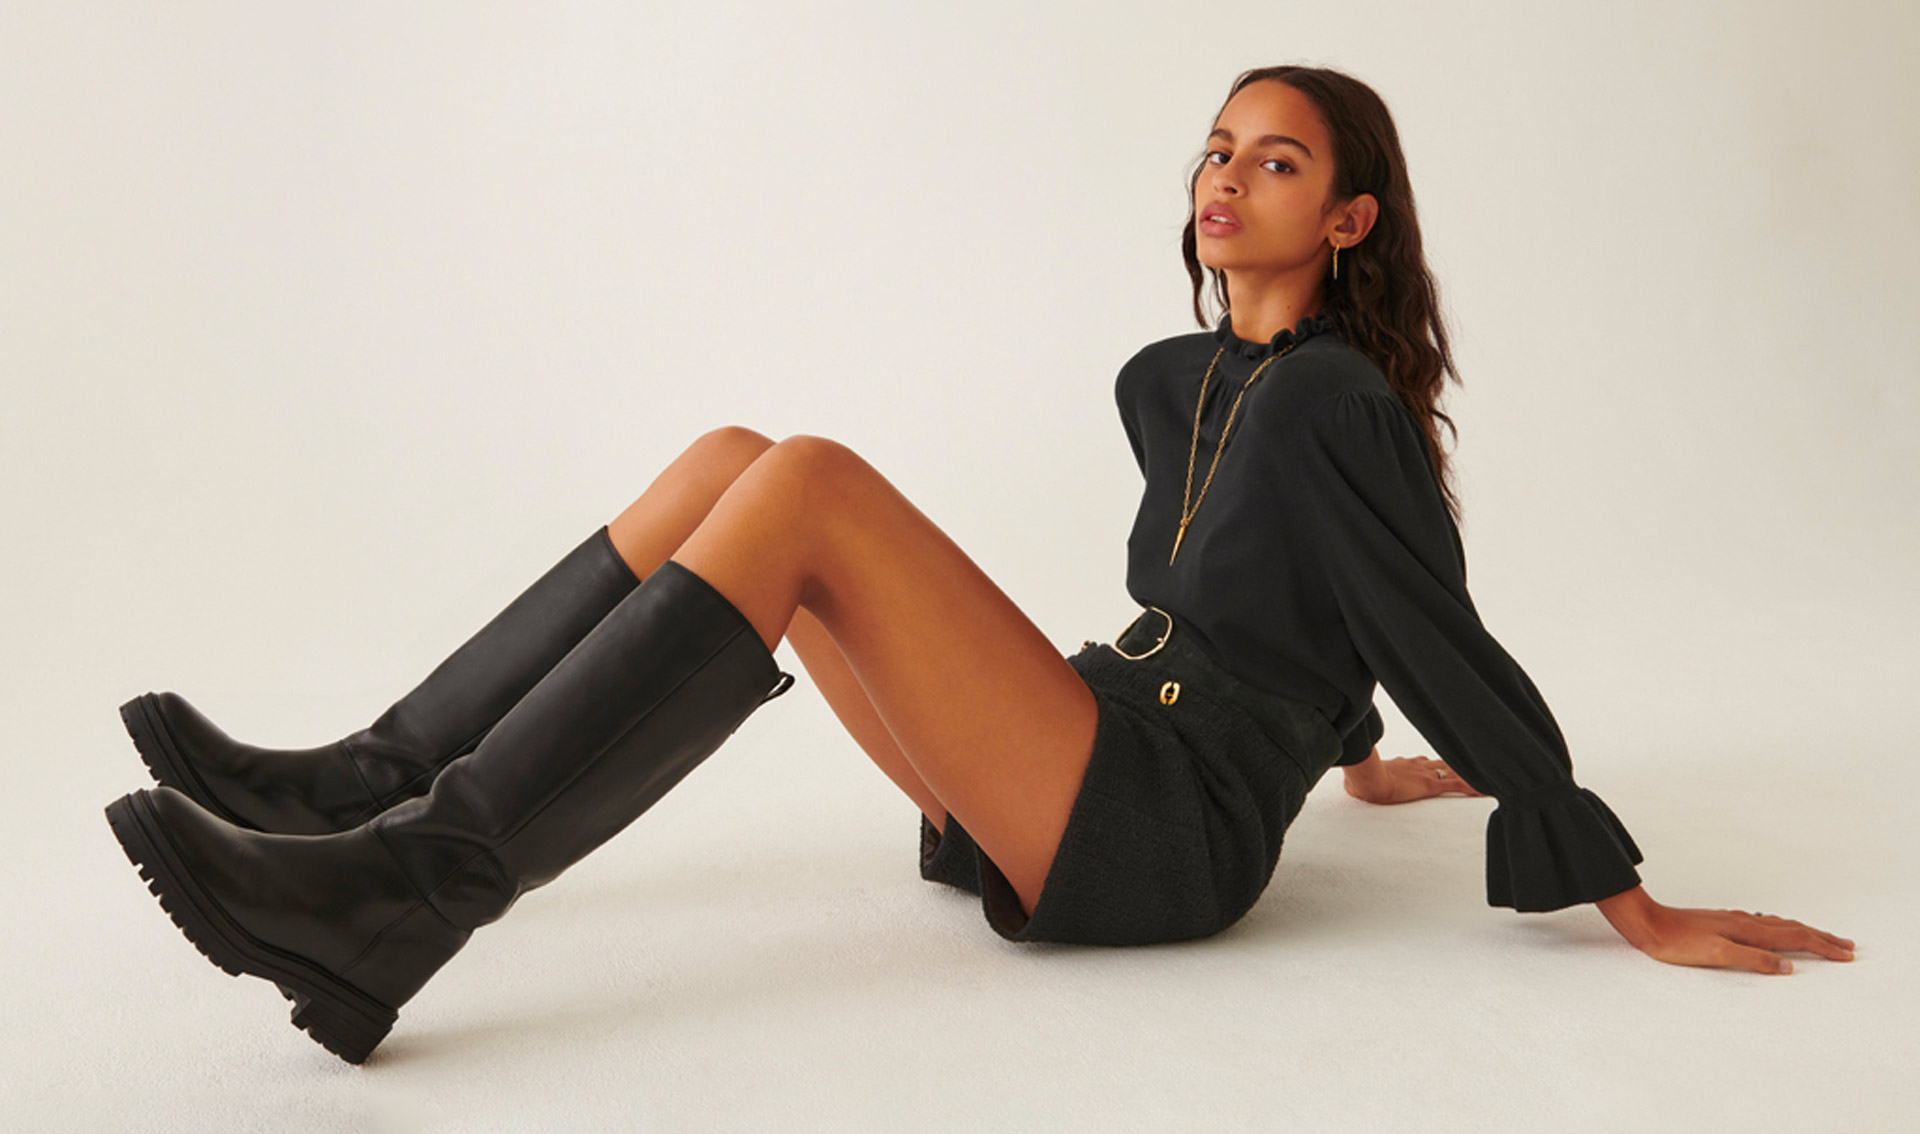 A brunette woman is wearing knee high leather boots from the ba&sh new boots collection